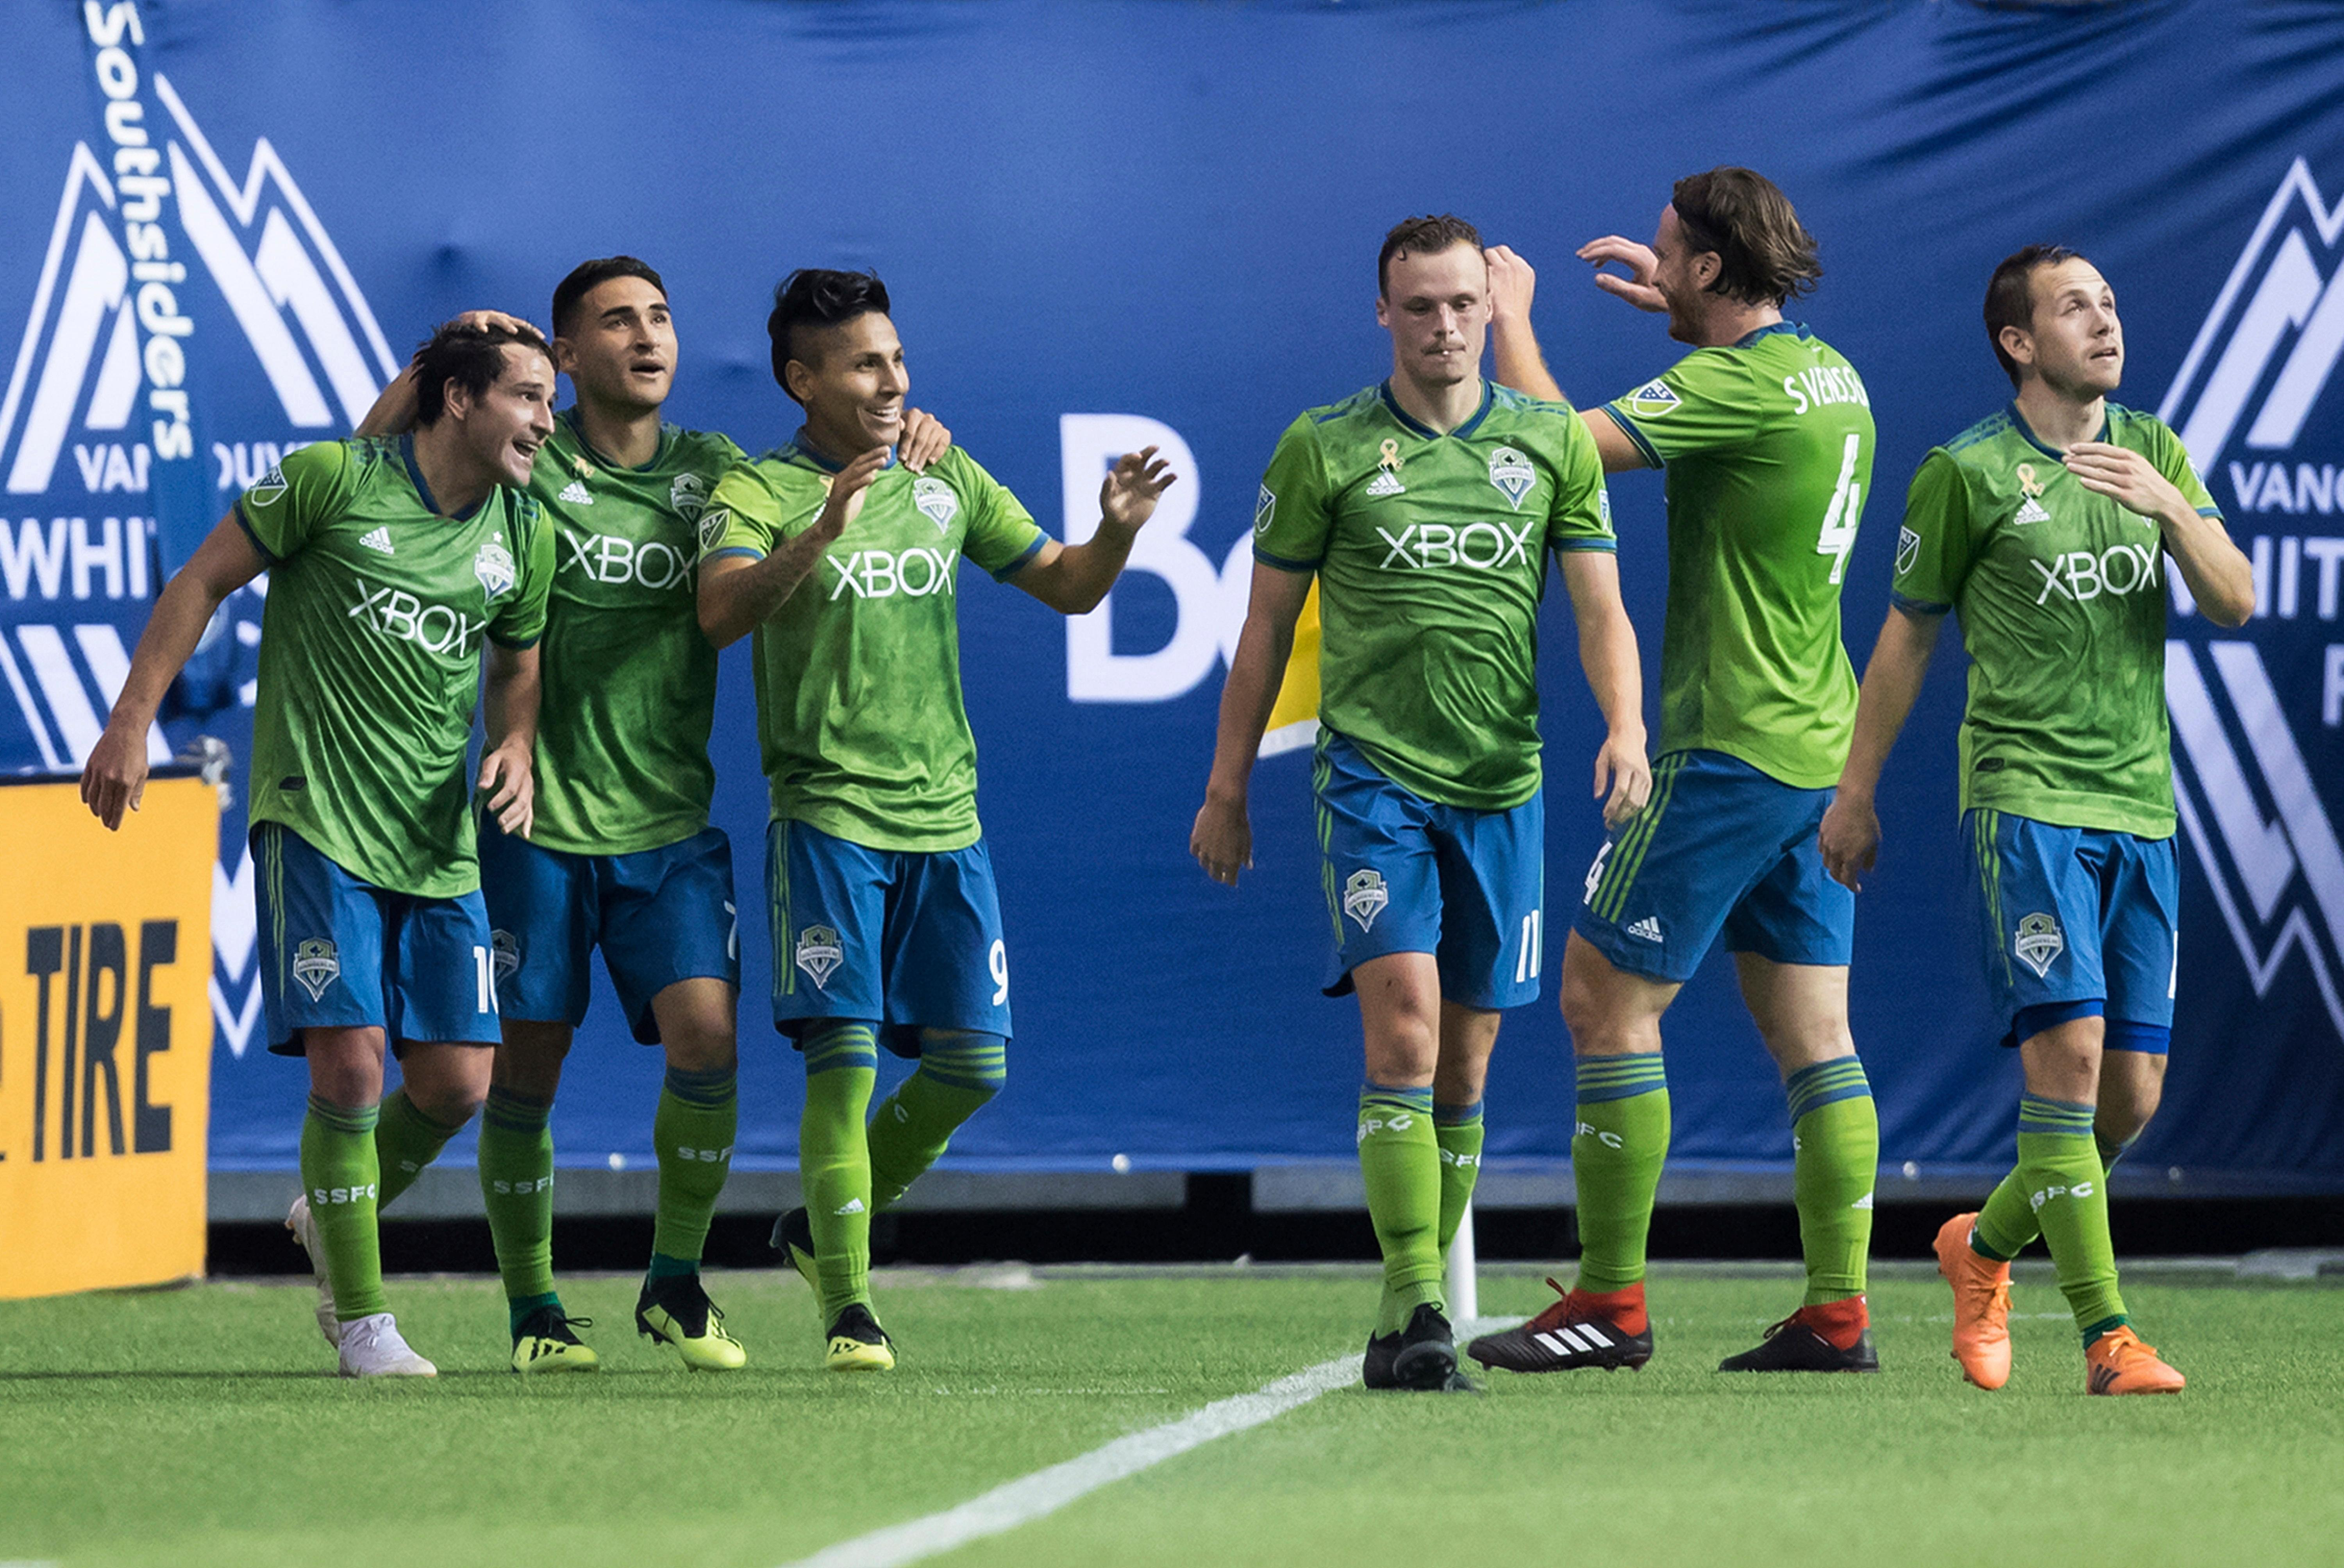 Seattle Sounders' Nicolas Lodeiro, from left to right, Cristian Roldan, Raul Ruidiaz, Brad Smith, Gustav Svensson and Harry Shipp celebrate Ruidiaz's second goal against the Vancouver Whitecaps during the first half of an MLS soccer match, Saturday, Sept. 15, 2018, in Vancouver, British Columbia. (Darryl Dyck/The Canadian Press via AP)